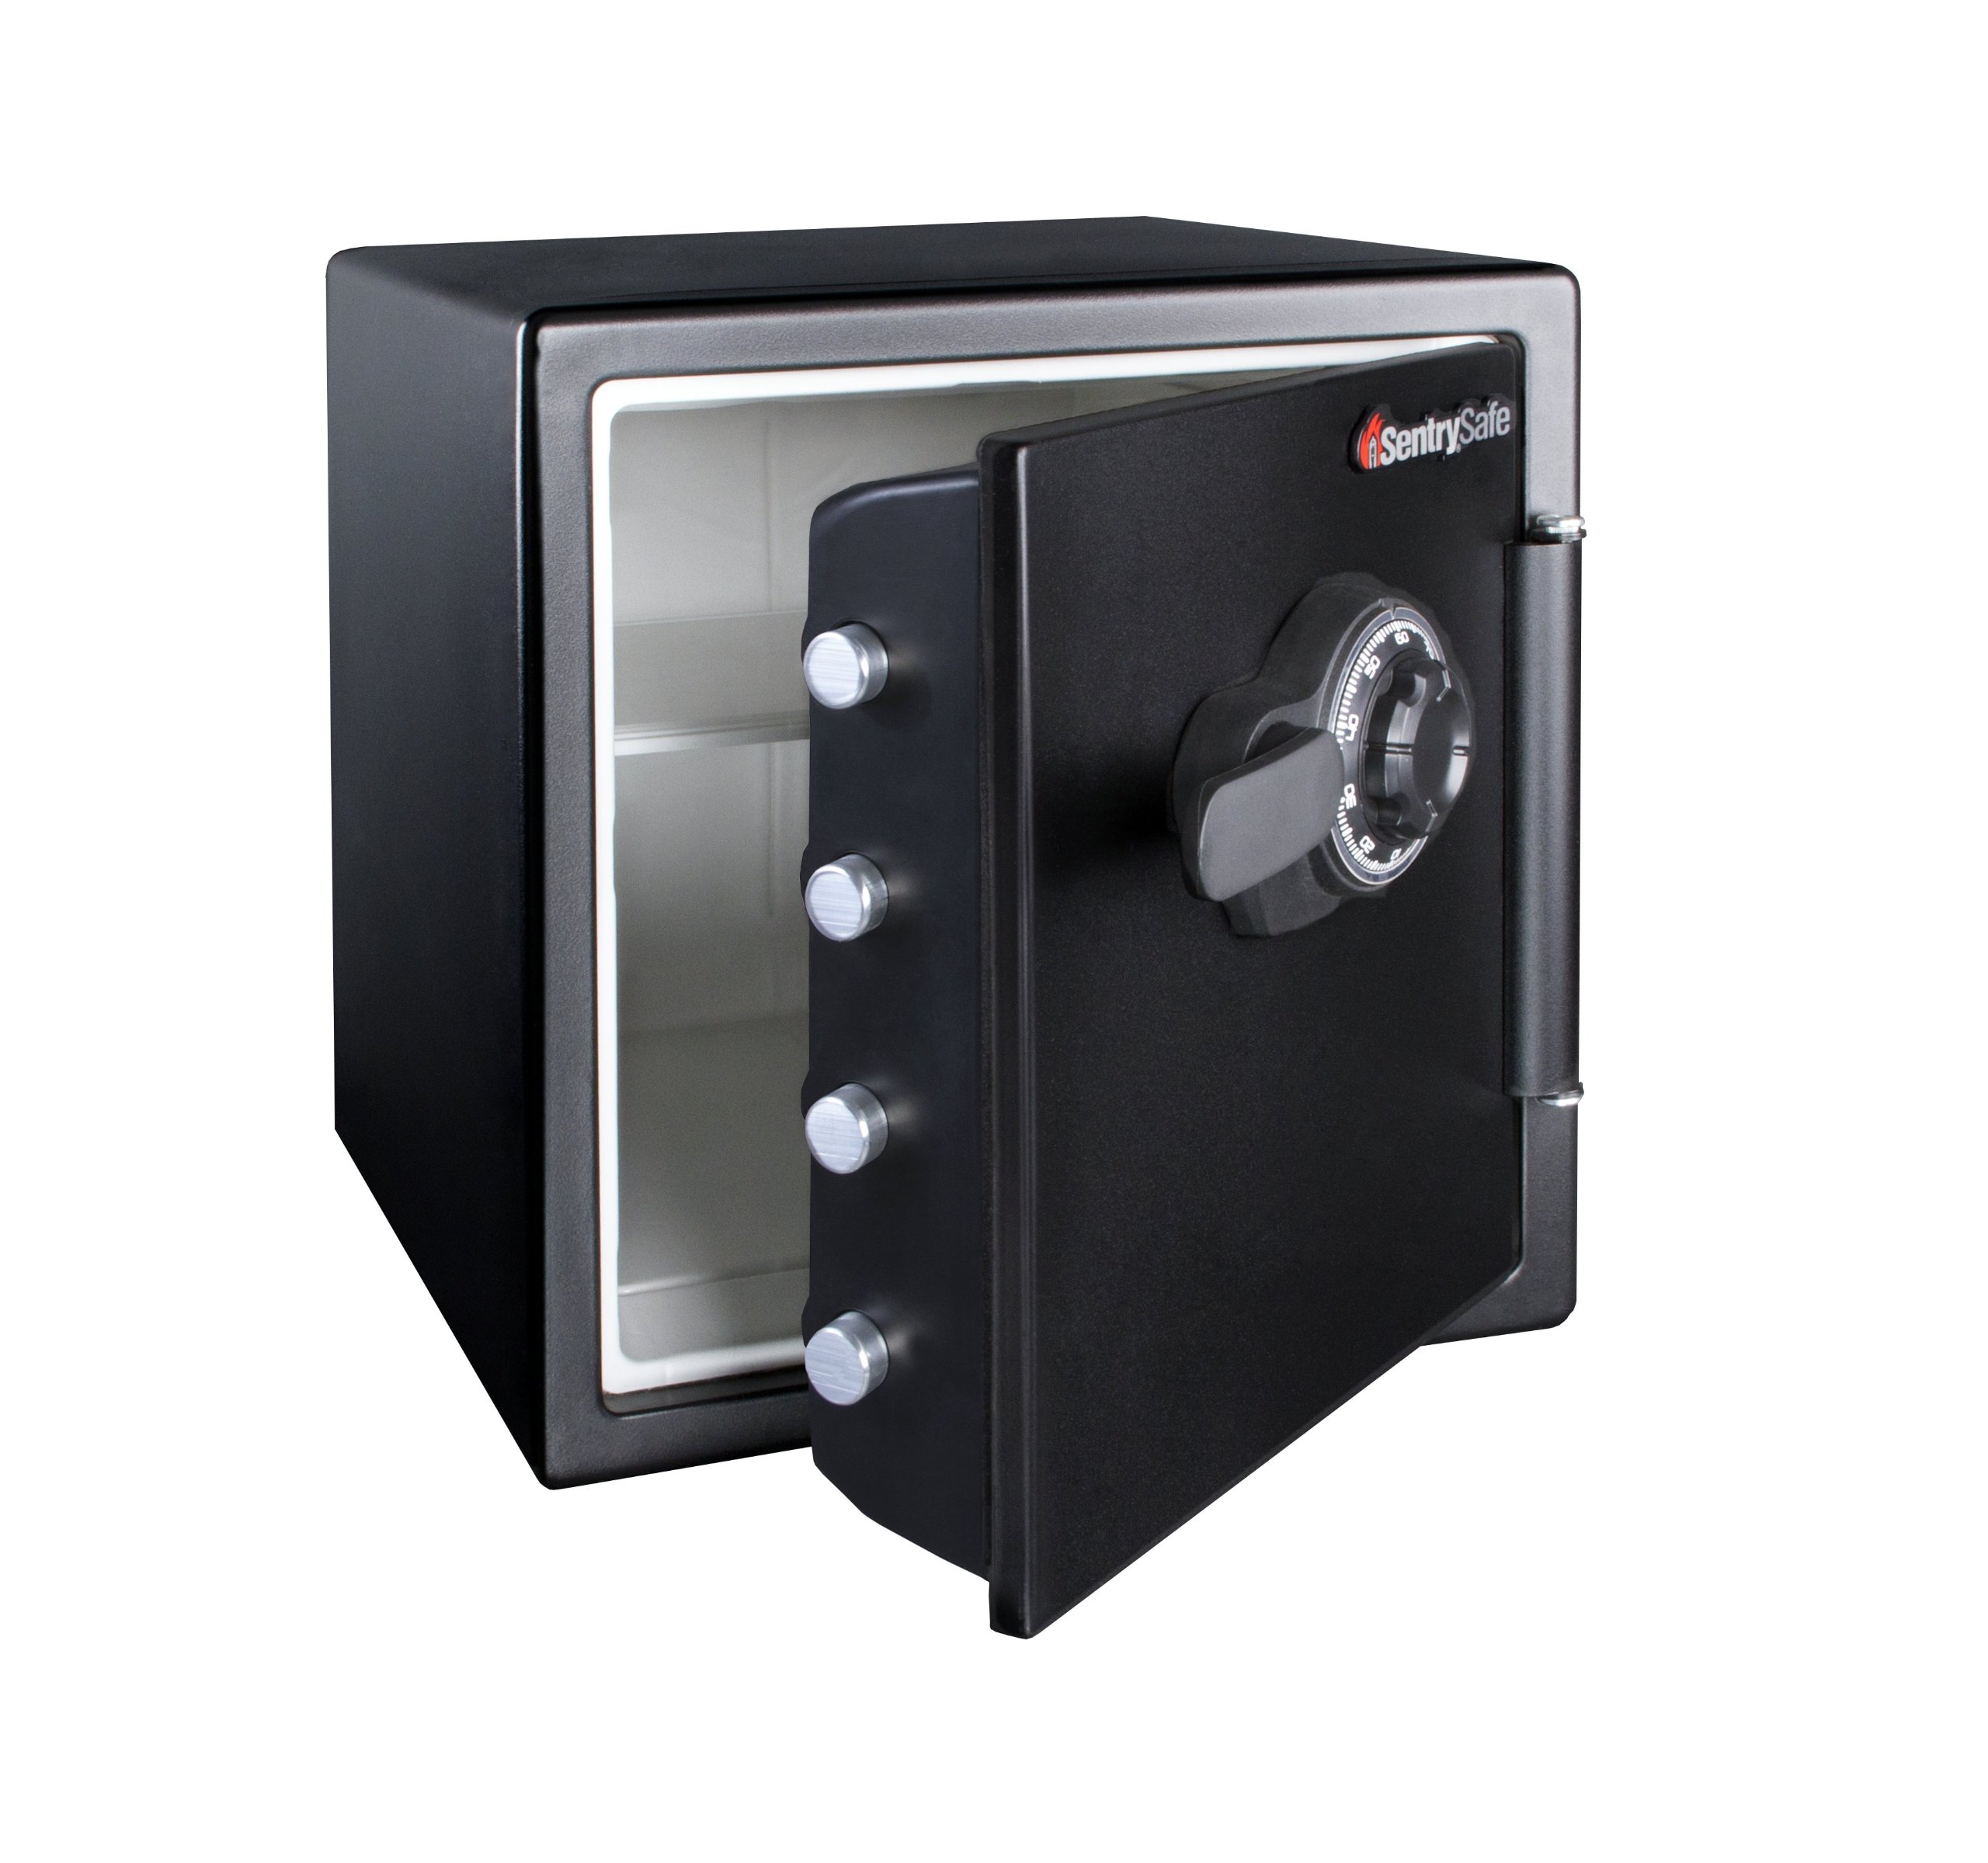 SentrySafe Fire and Water Safe, Extra Large Combination Safe, 1.23 Cubic Feet, SFW123CS by SentrySafe